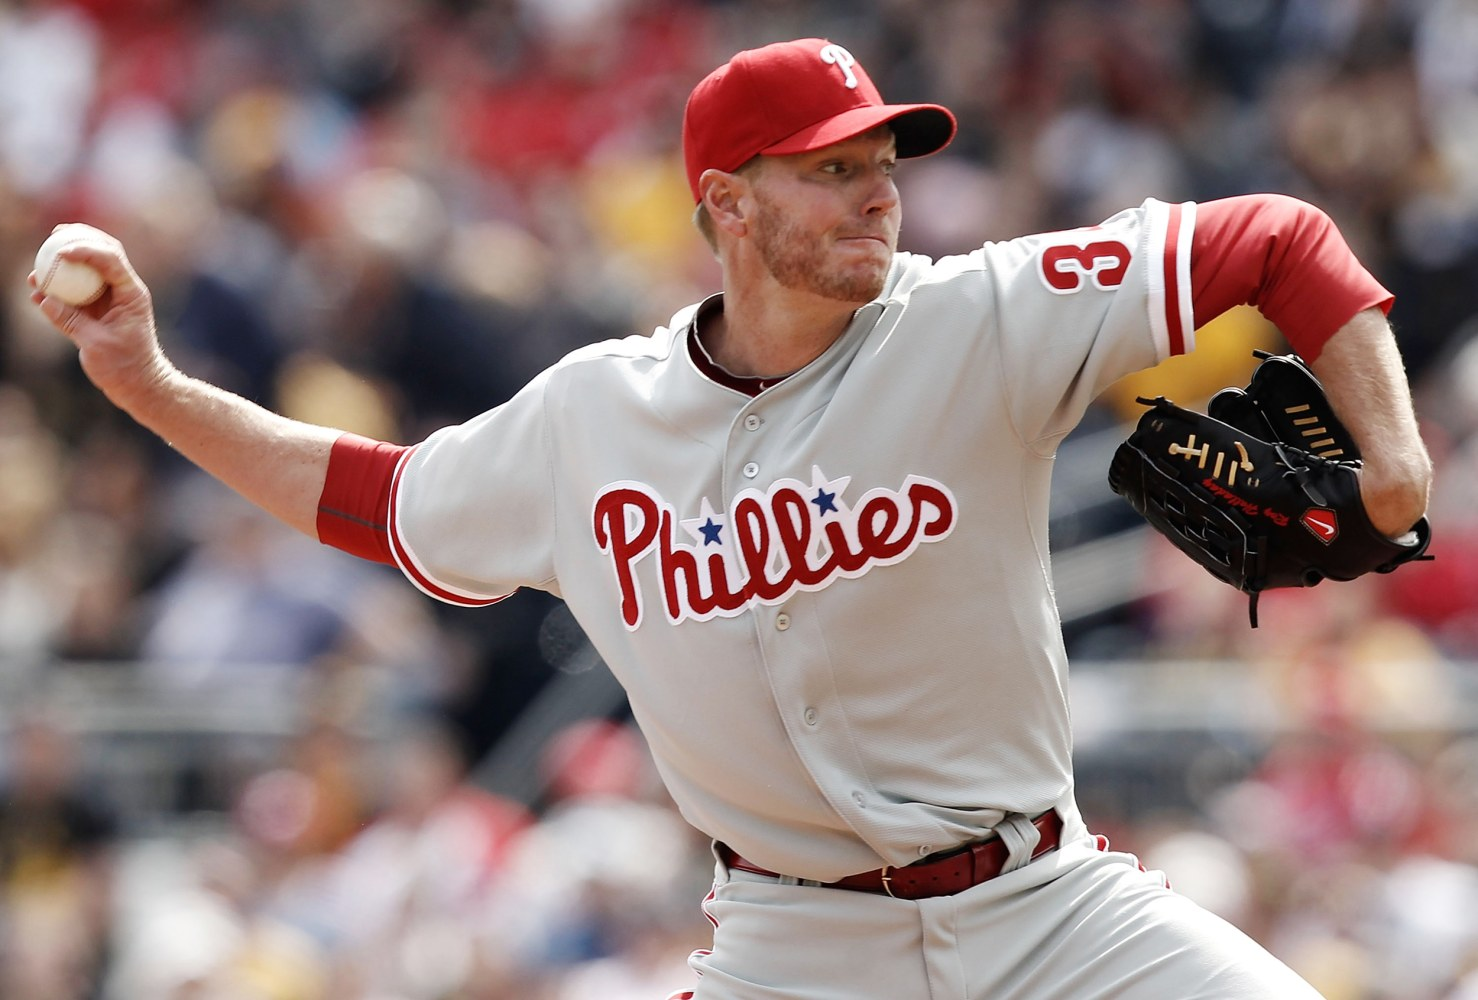 Roy Halladay dies in plane crash